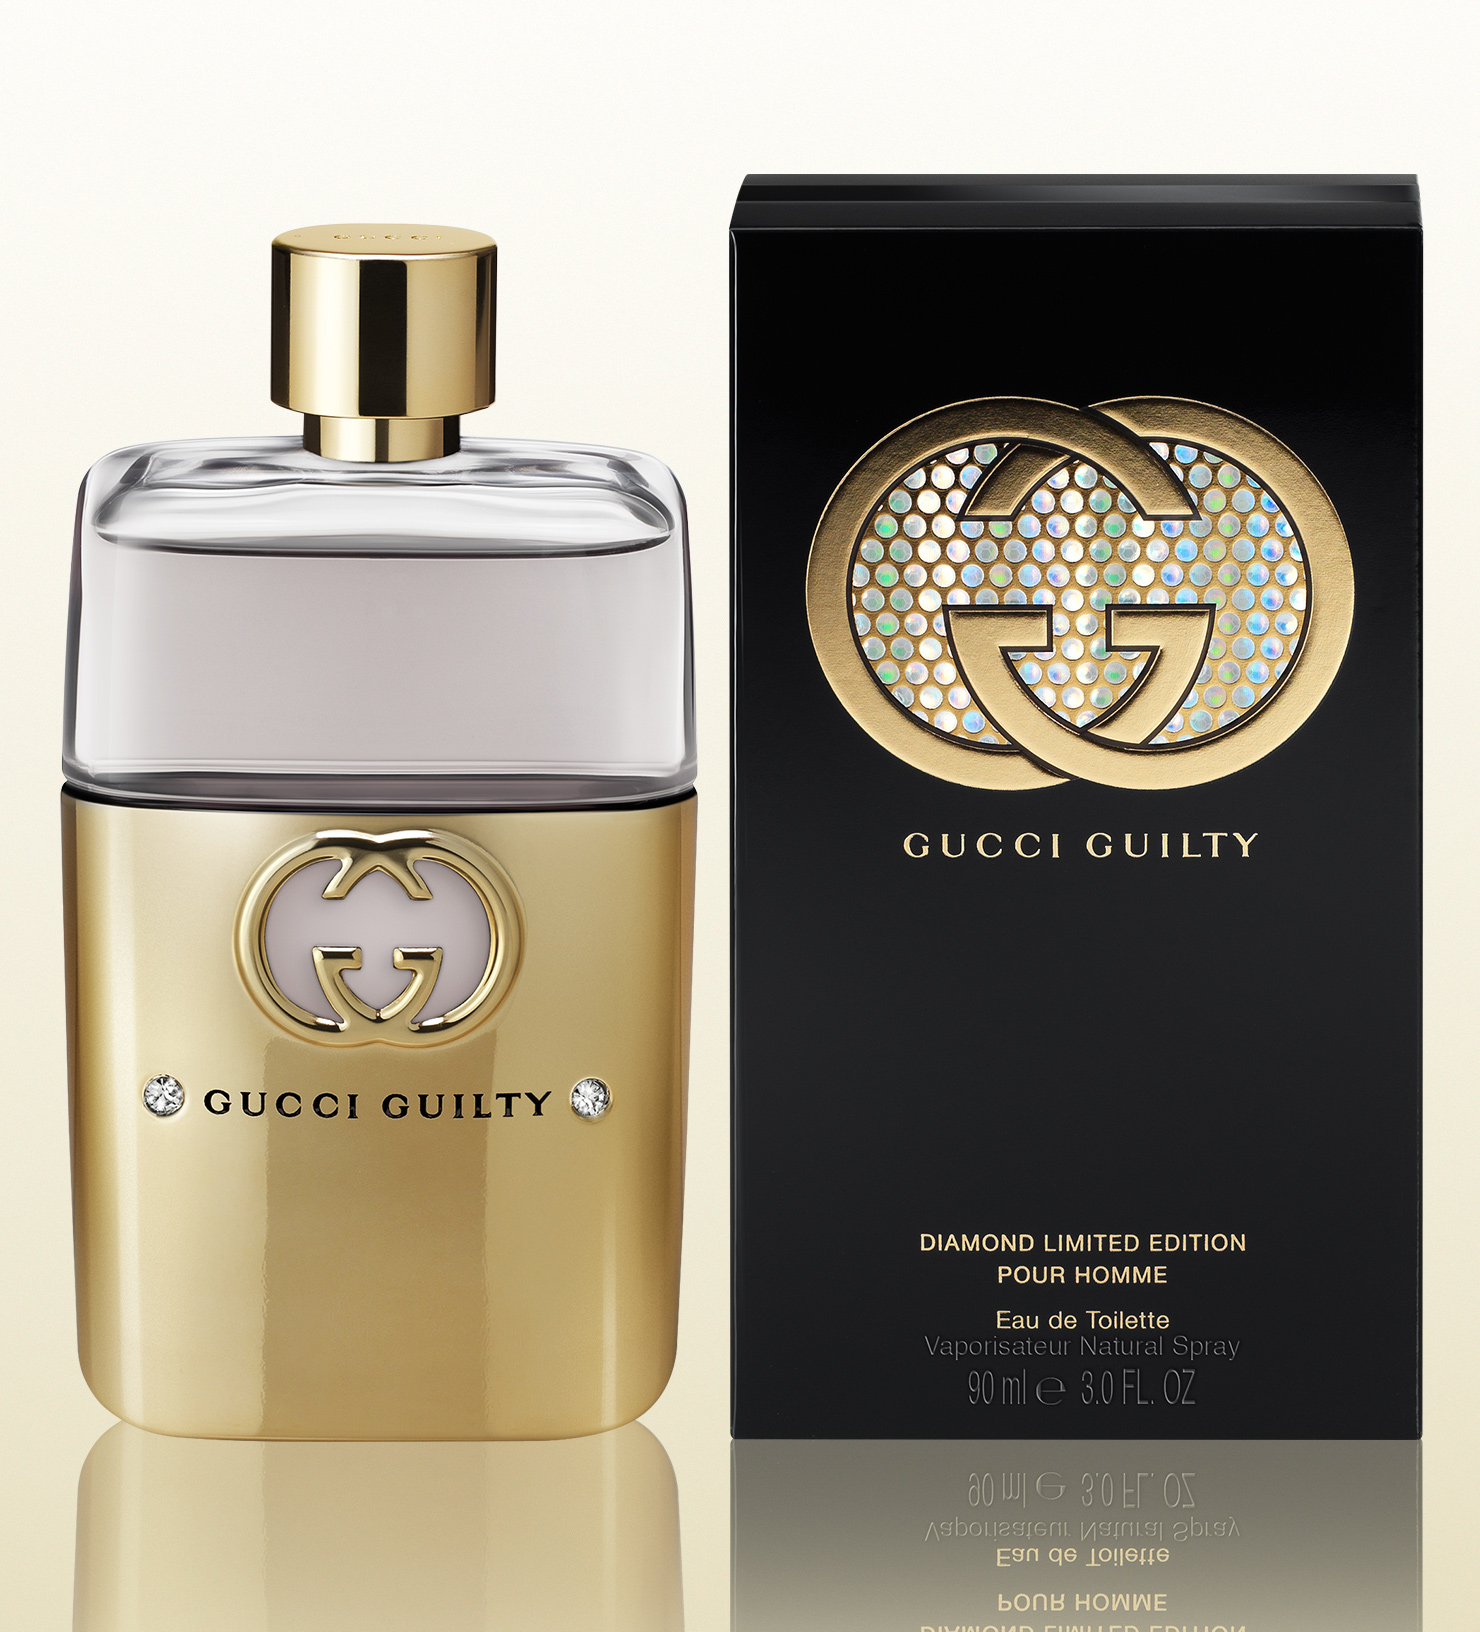 f7d169b8a Gucci Guilty Pour Homme Diamond Gucci cologne - a fragrance for men 2014